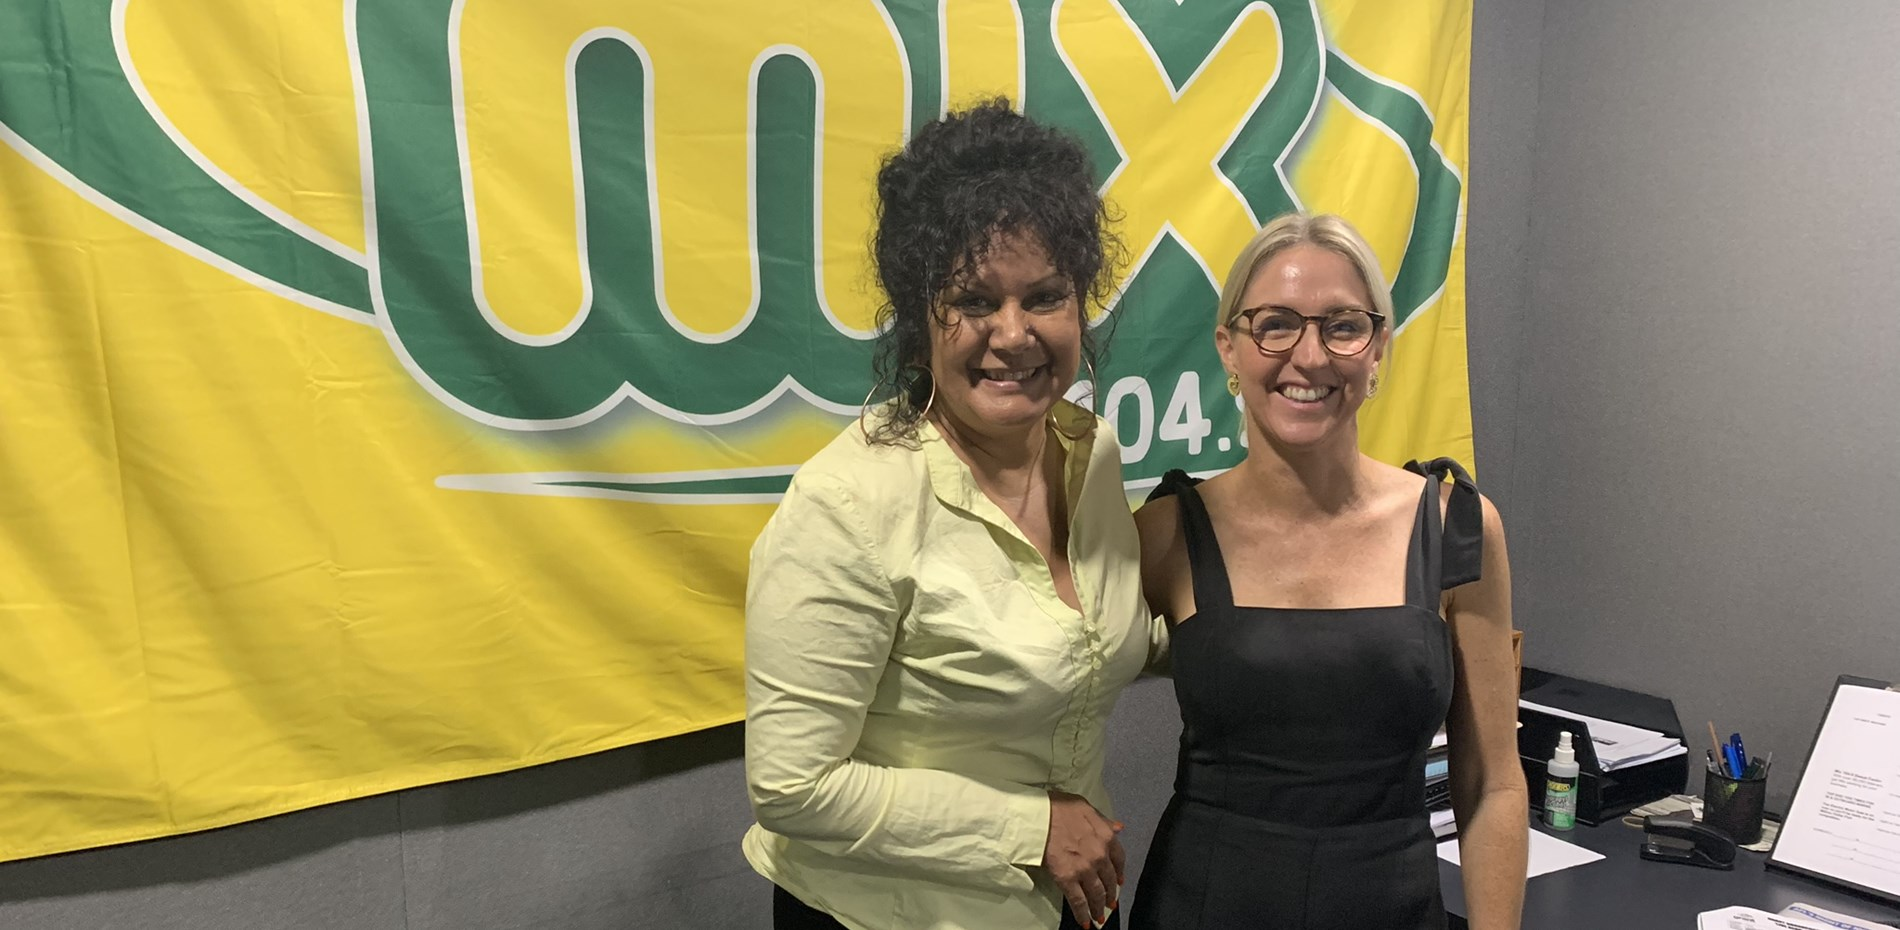 TRANSCRIPT: 10 DECEMBER 2020, MIX 104.9 KATIE WOOLF Main Image